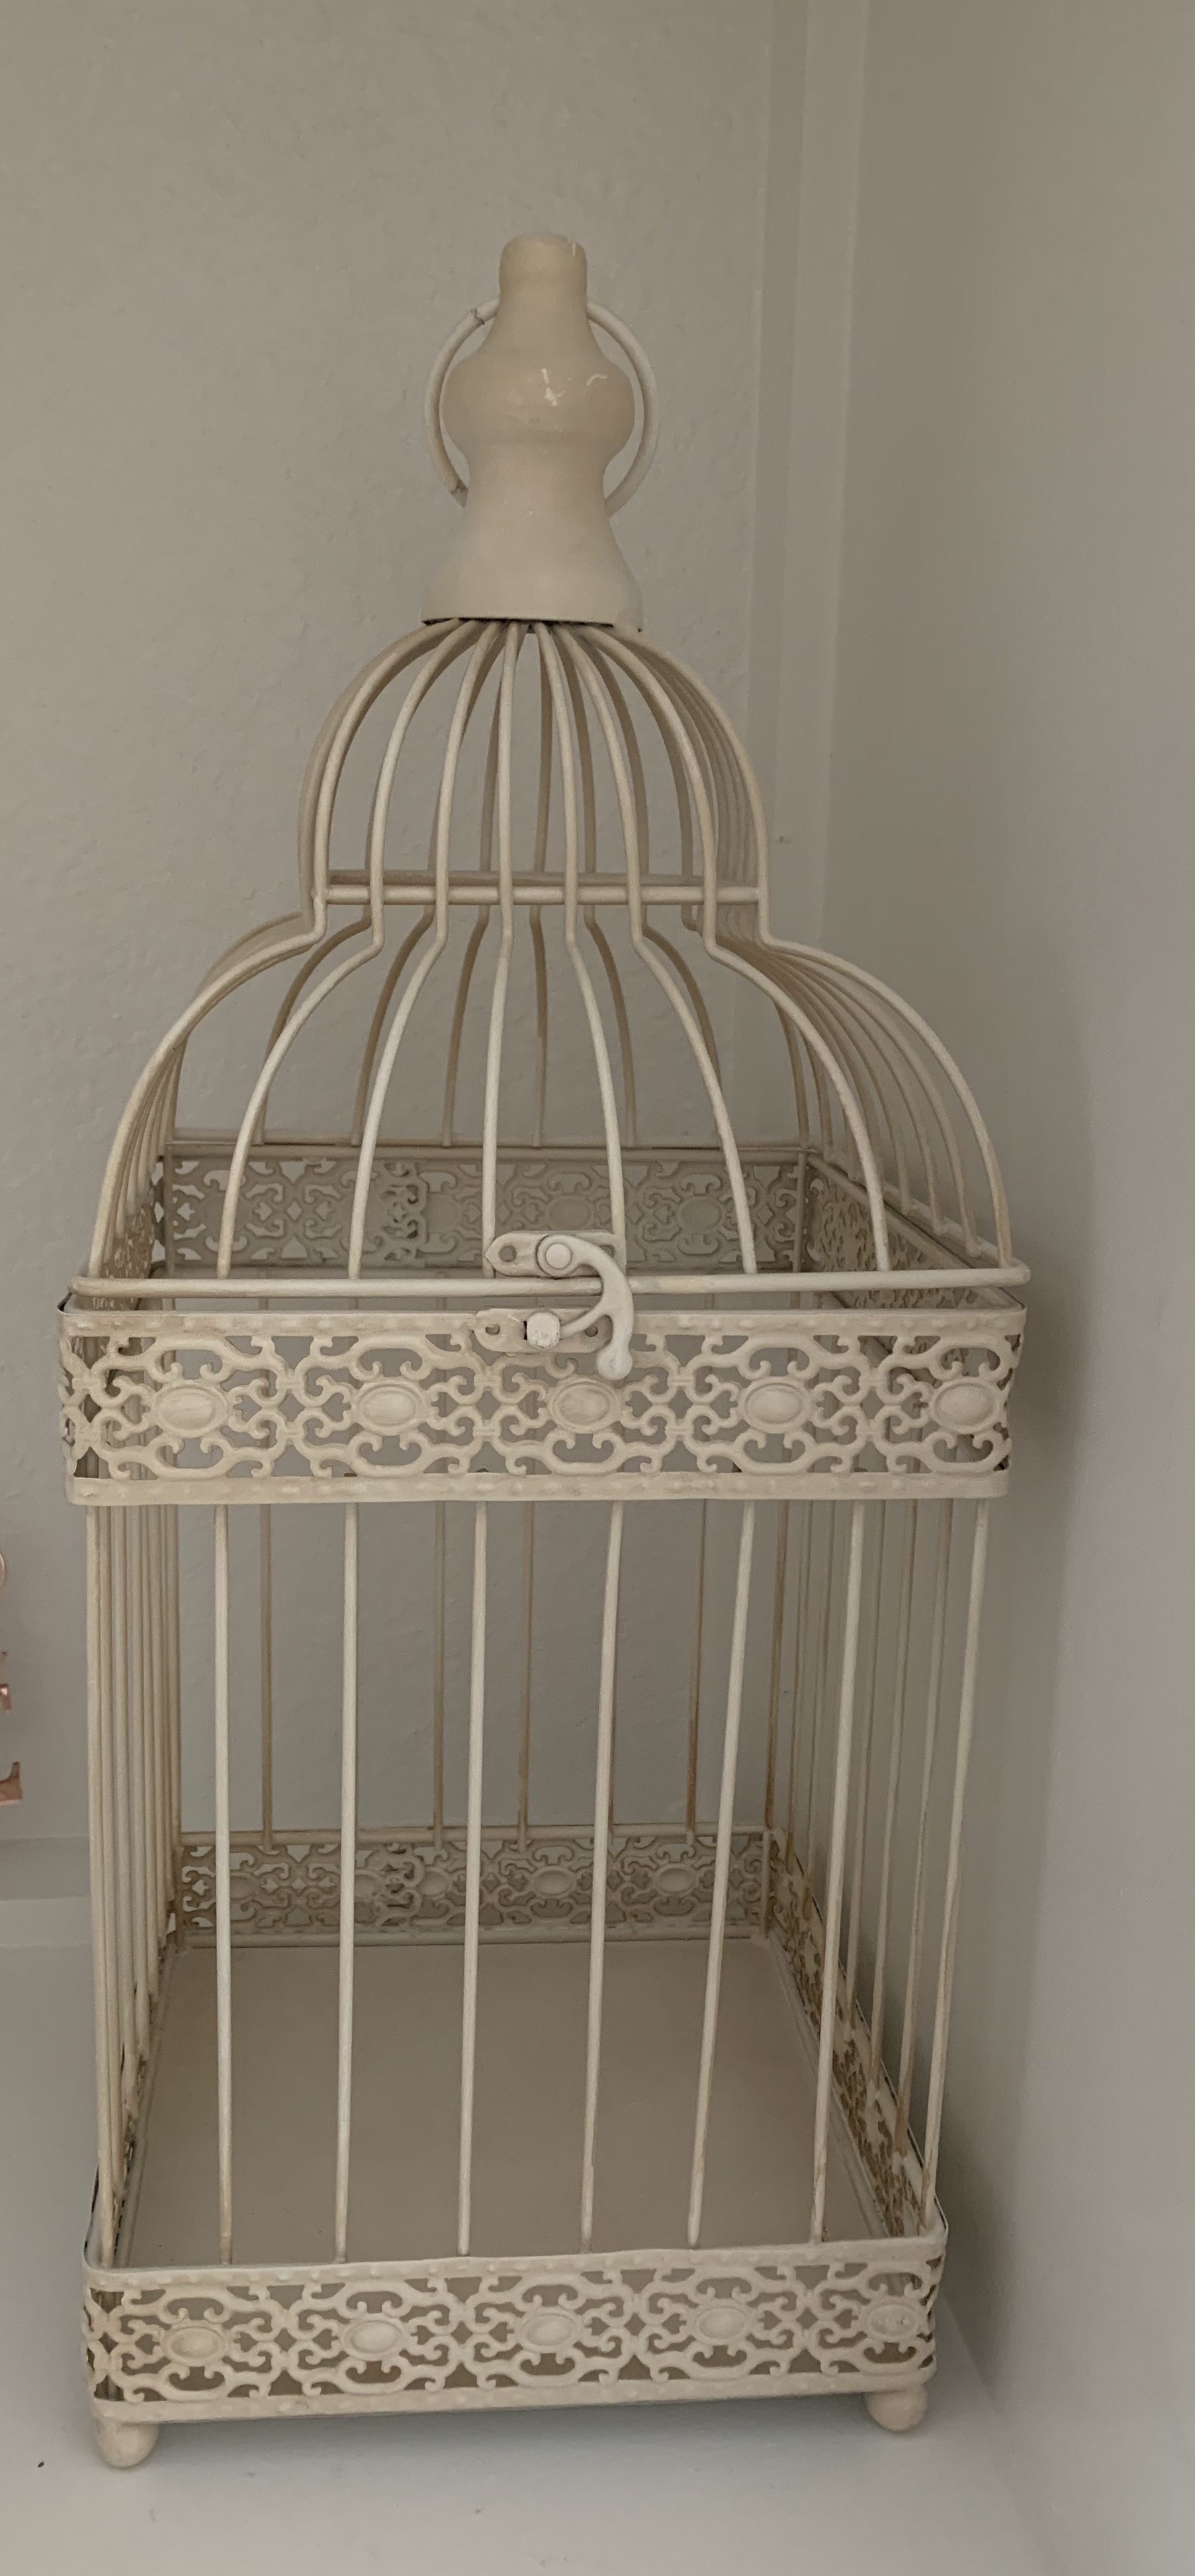 Birdcage For Gift Cards